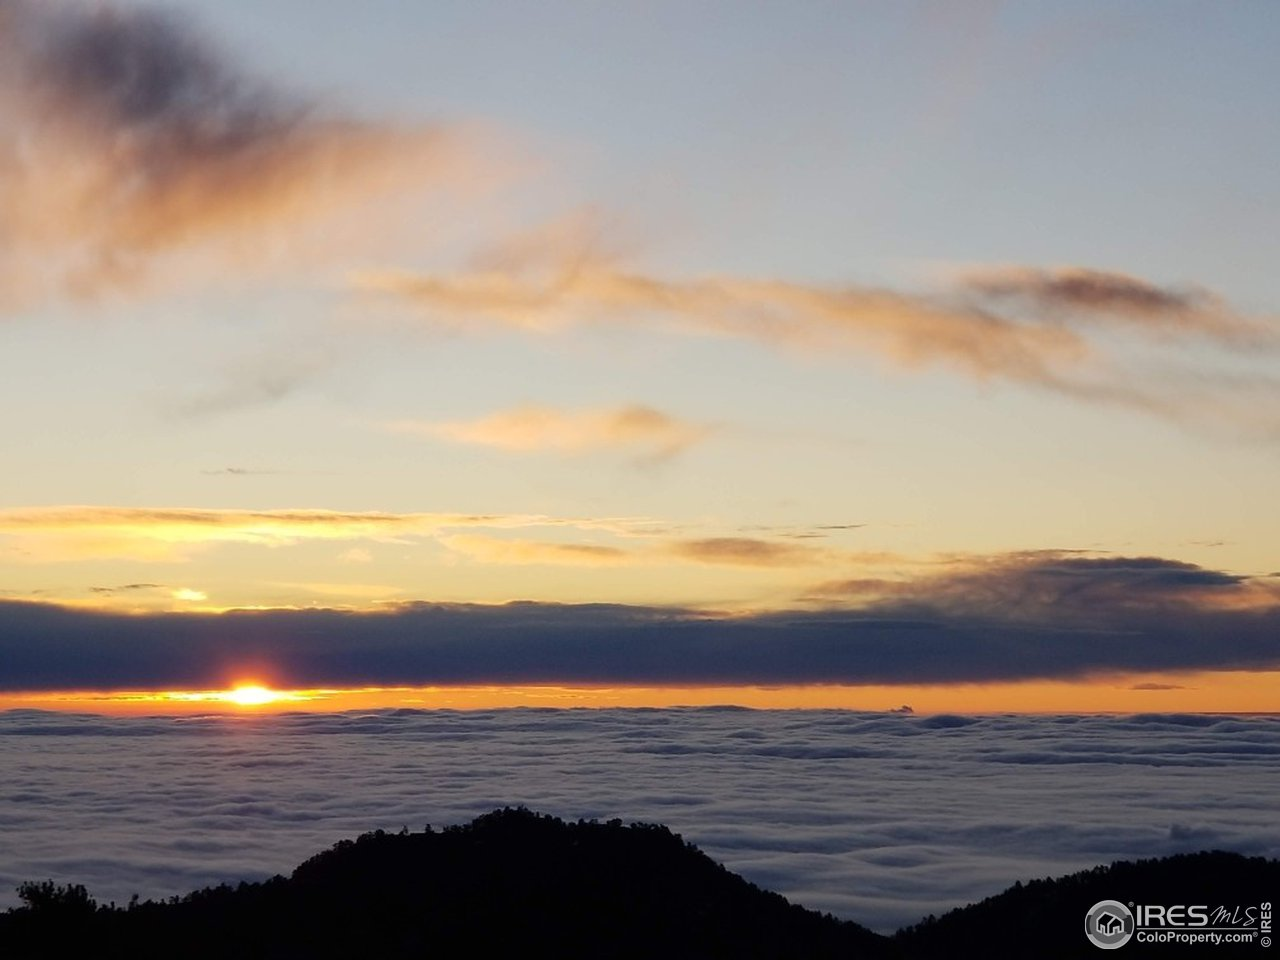 OMG! Sunrise above & between the clouds